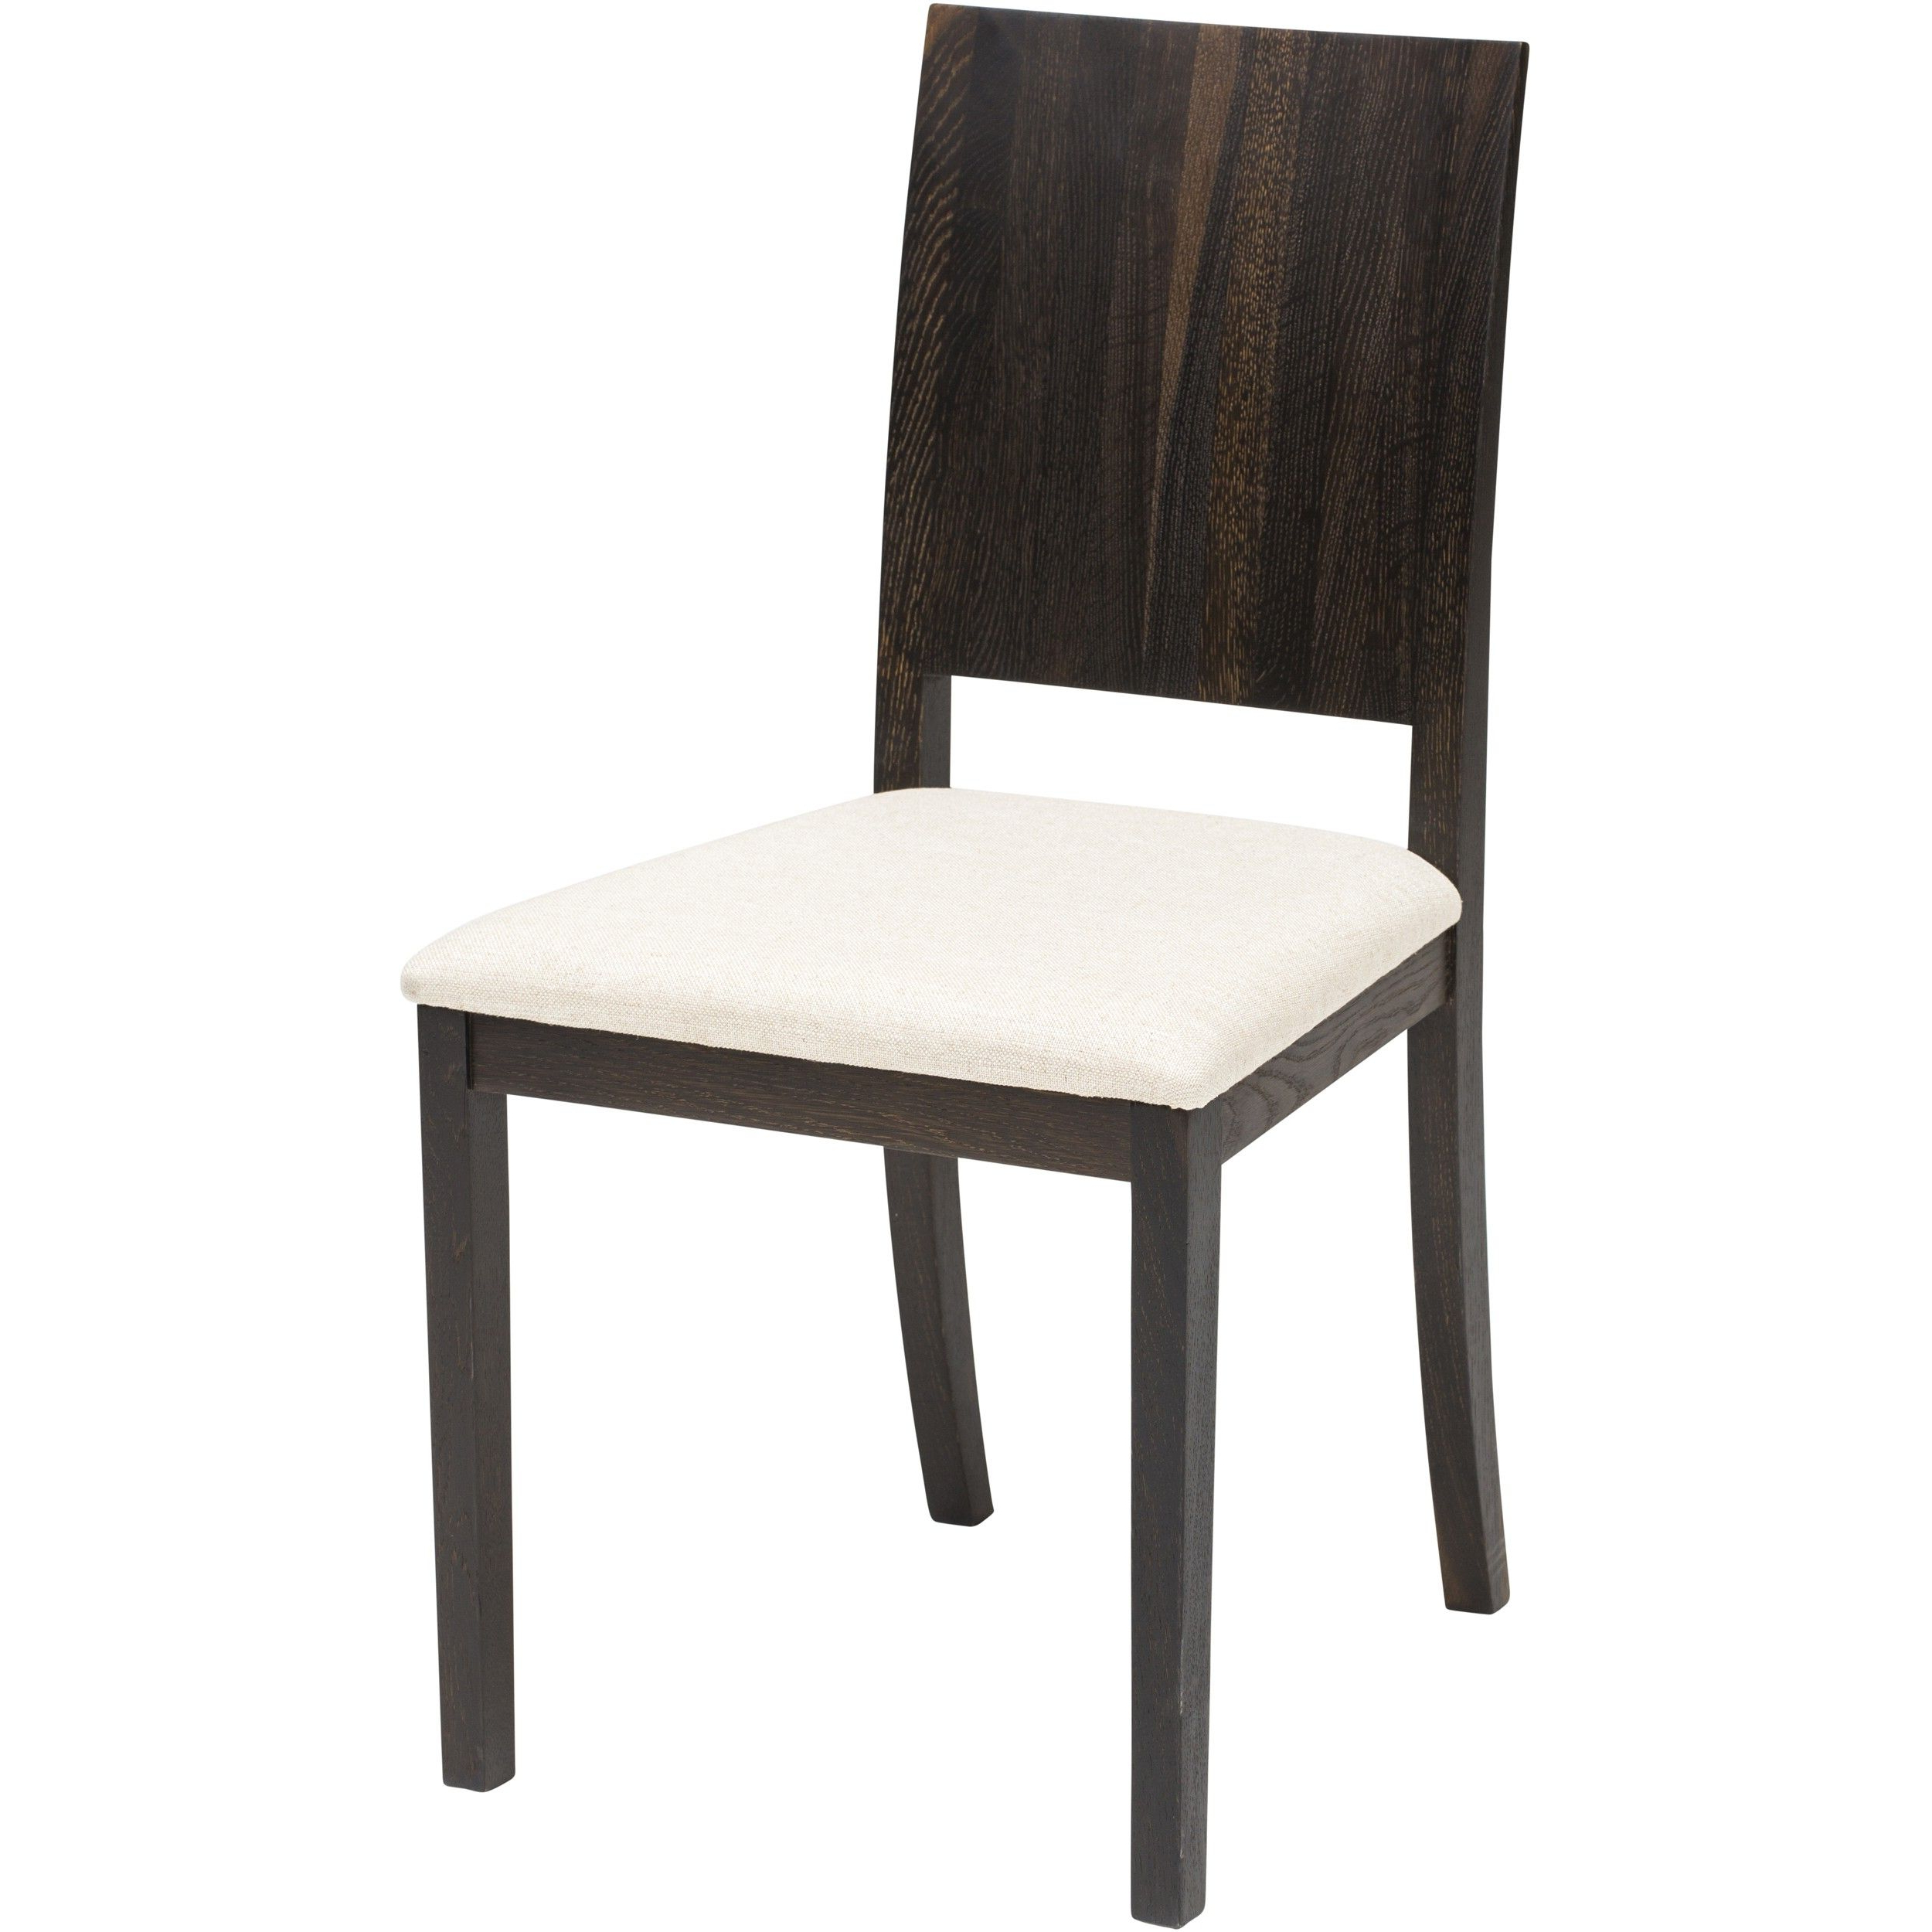 Newest Dining Tables In Smoked Seared Oak With Obi Dining Chair, Seared Oak – Furniture – Dining – Chairs (View 14 of 30)